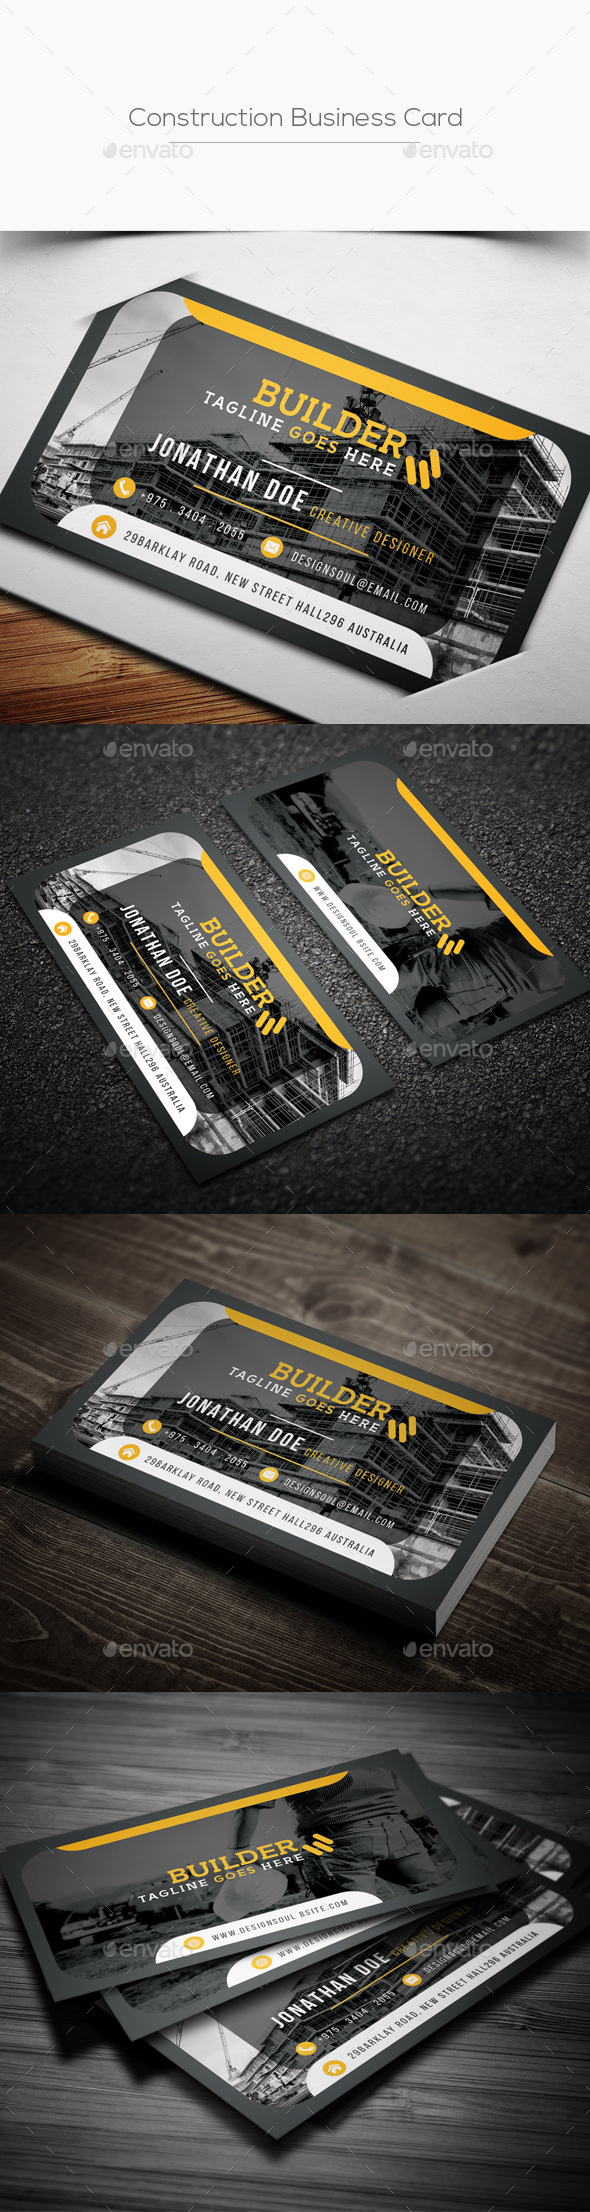 Construction Business Card - Corporate Business Cards